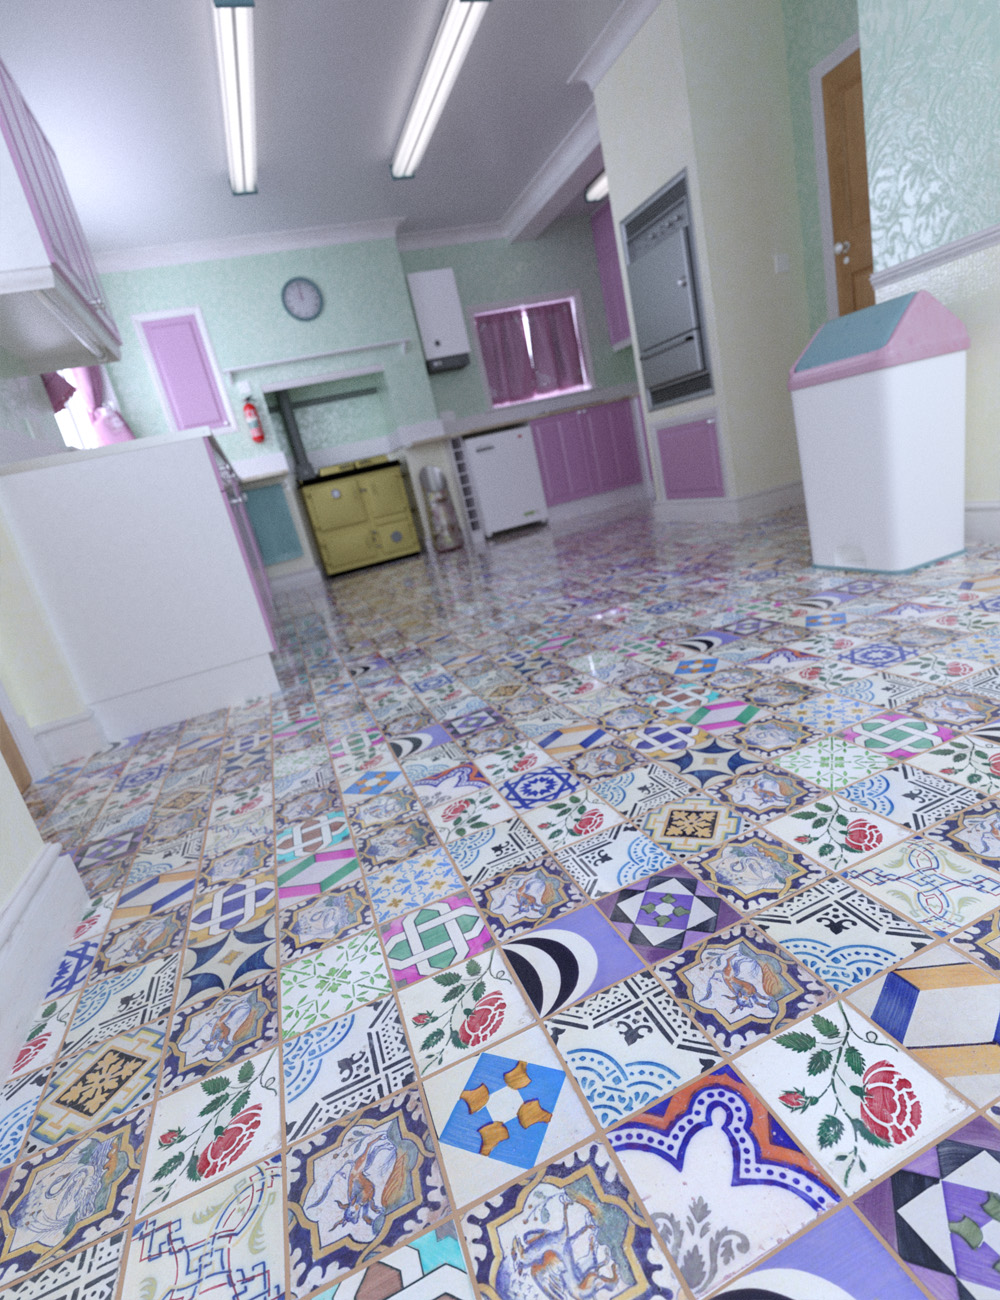 Patchwork Chic Floor Tile Iray Shaders by: ForbiddenWhispers, 3D Models by Daz 3D